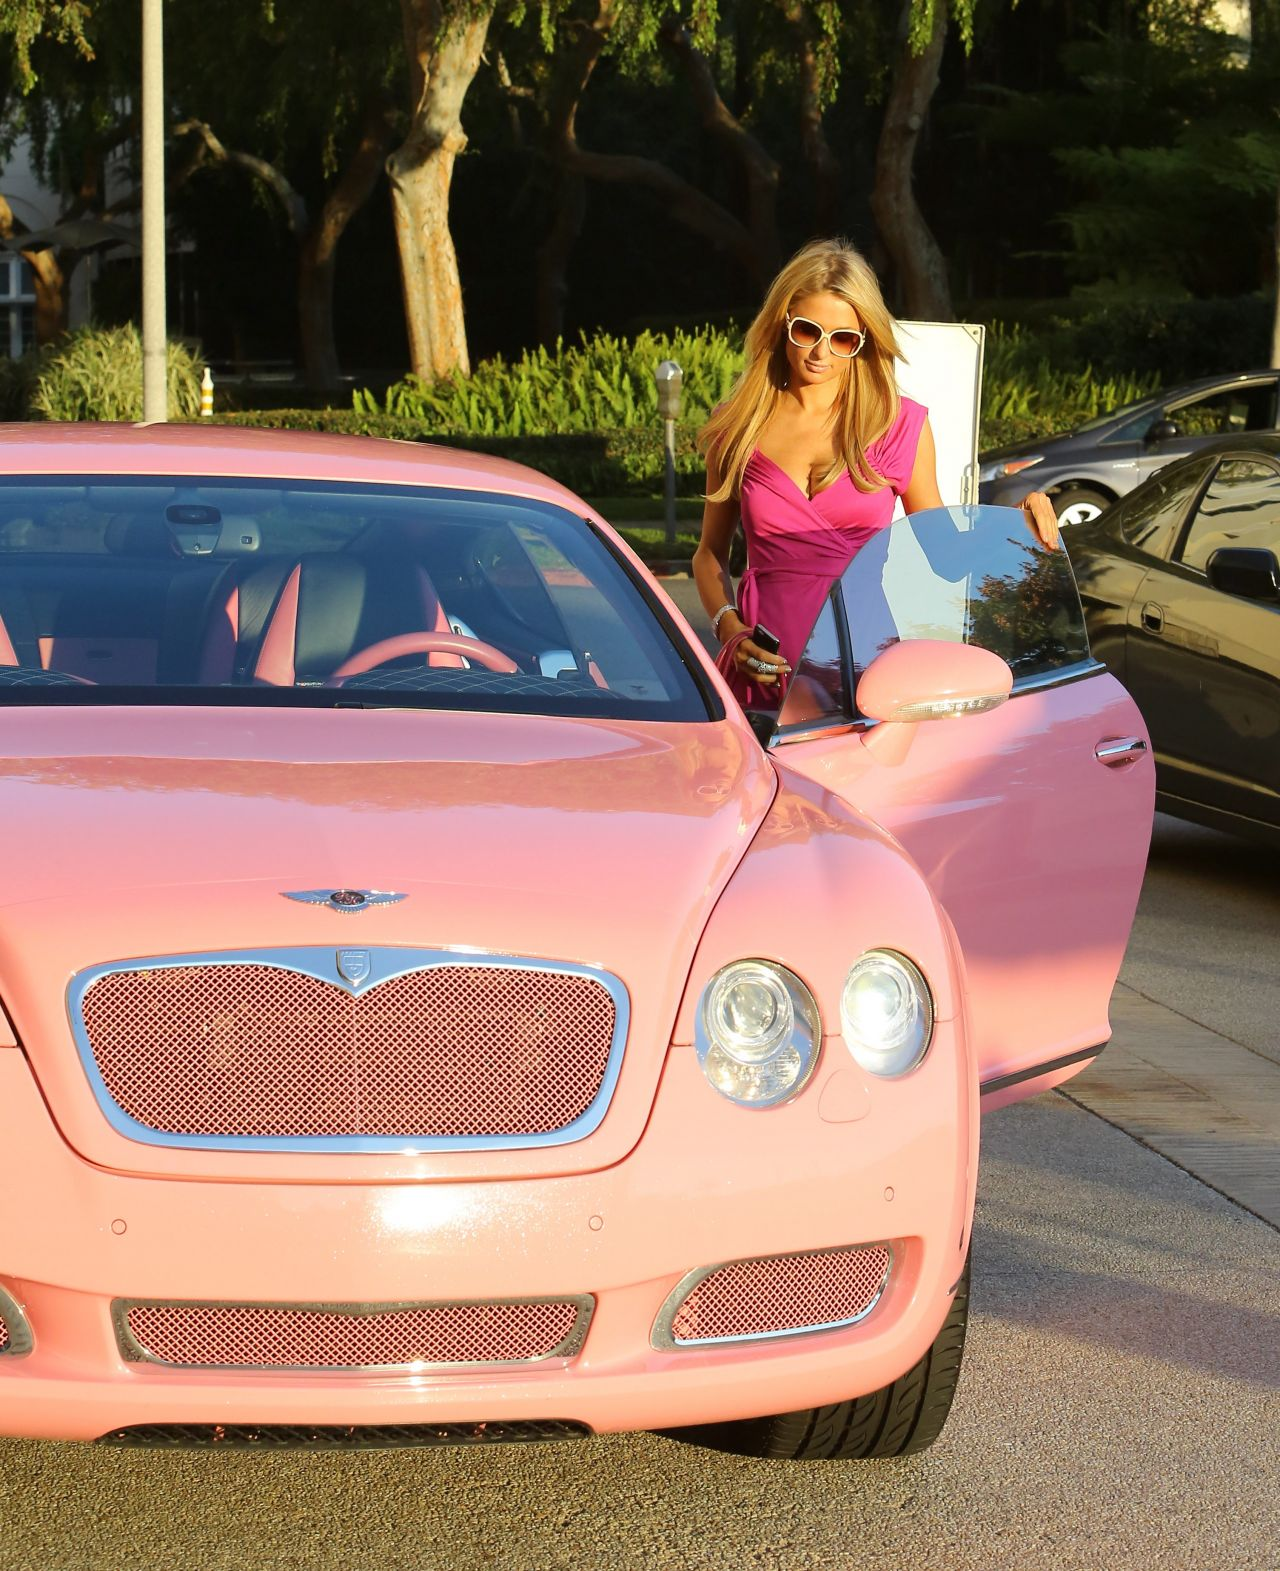 Bentley 2014: Shopping At Barneys & Drives A Pink Bentley